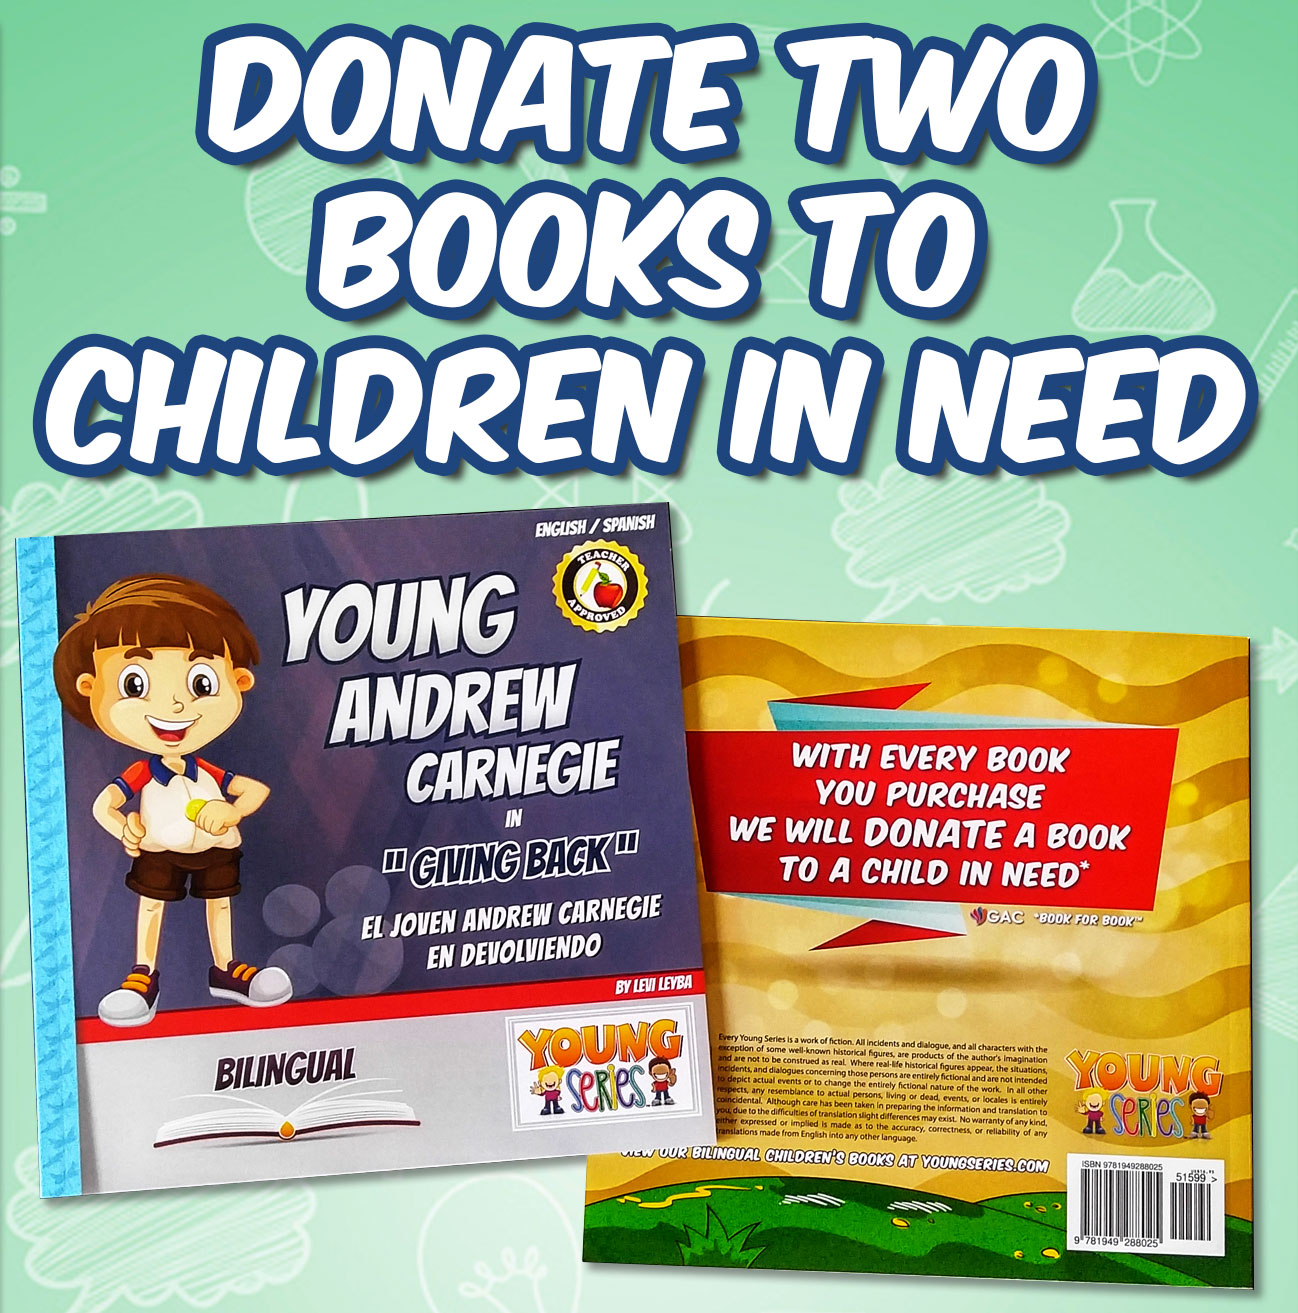 Donate Two Book to Children in Need